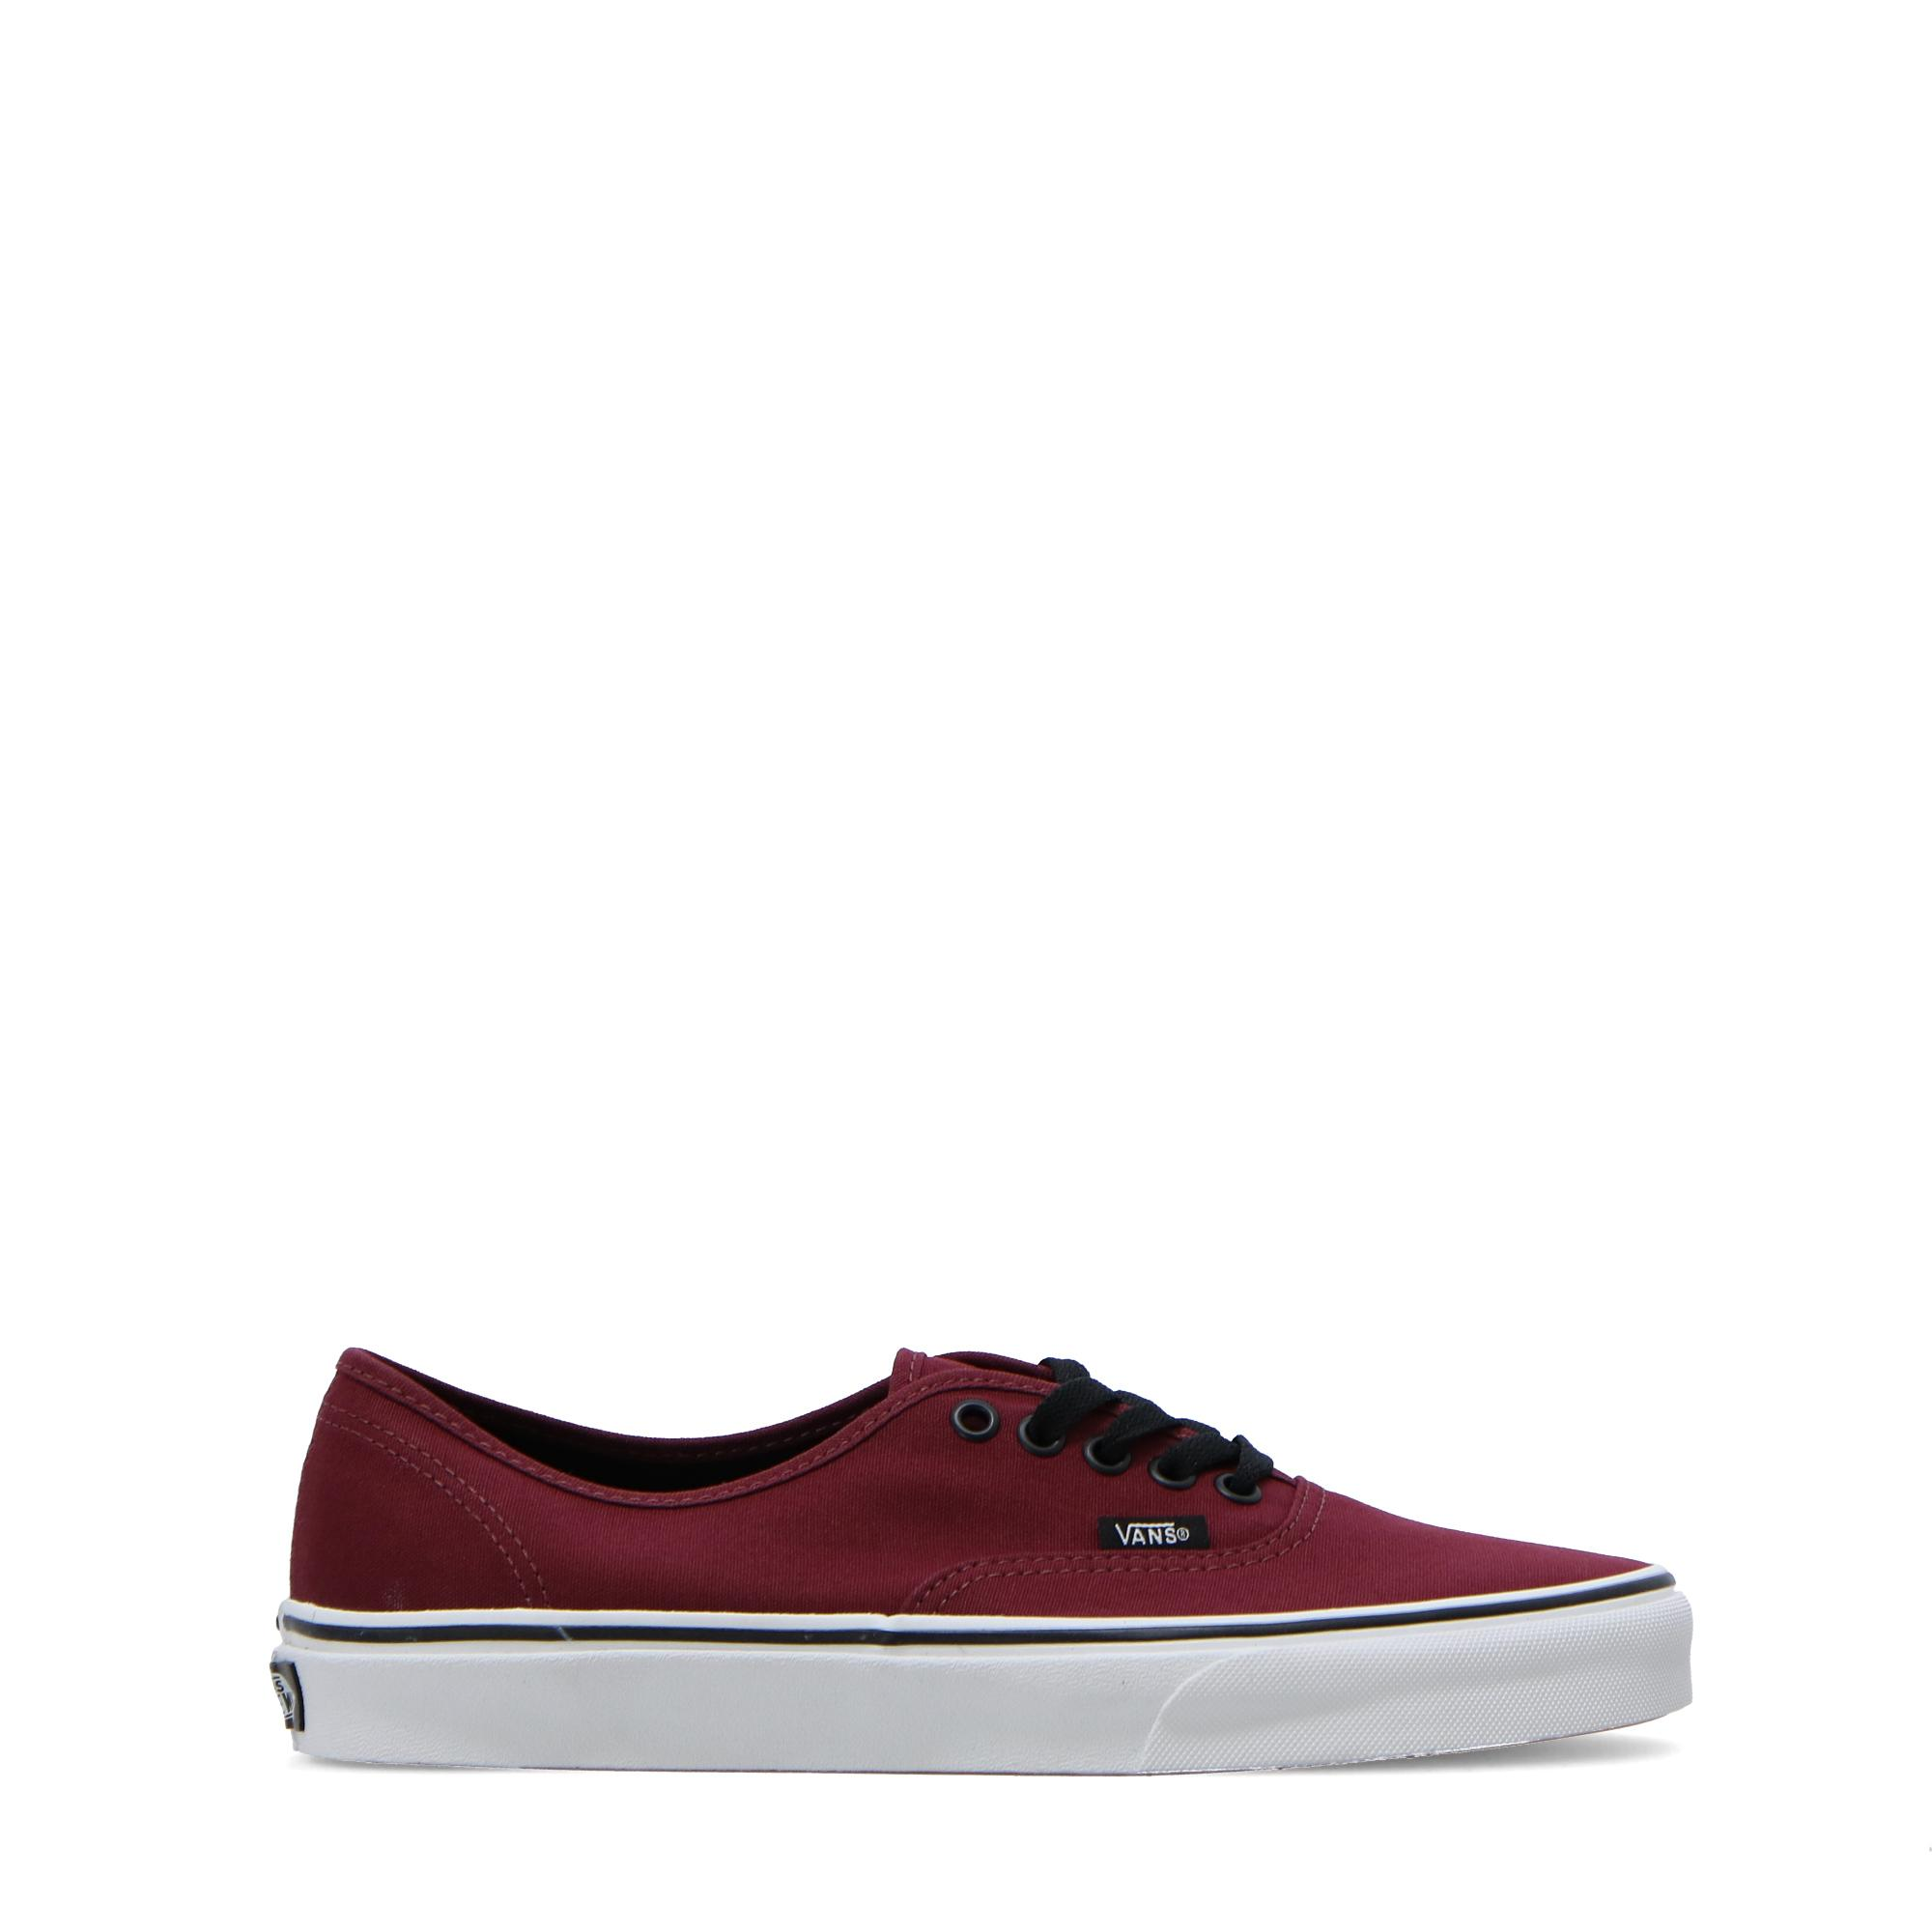 Vans Ua Authentic Port royale black